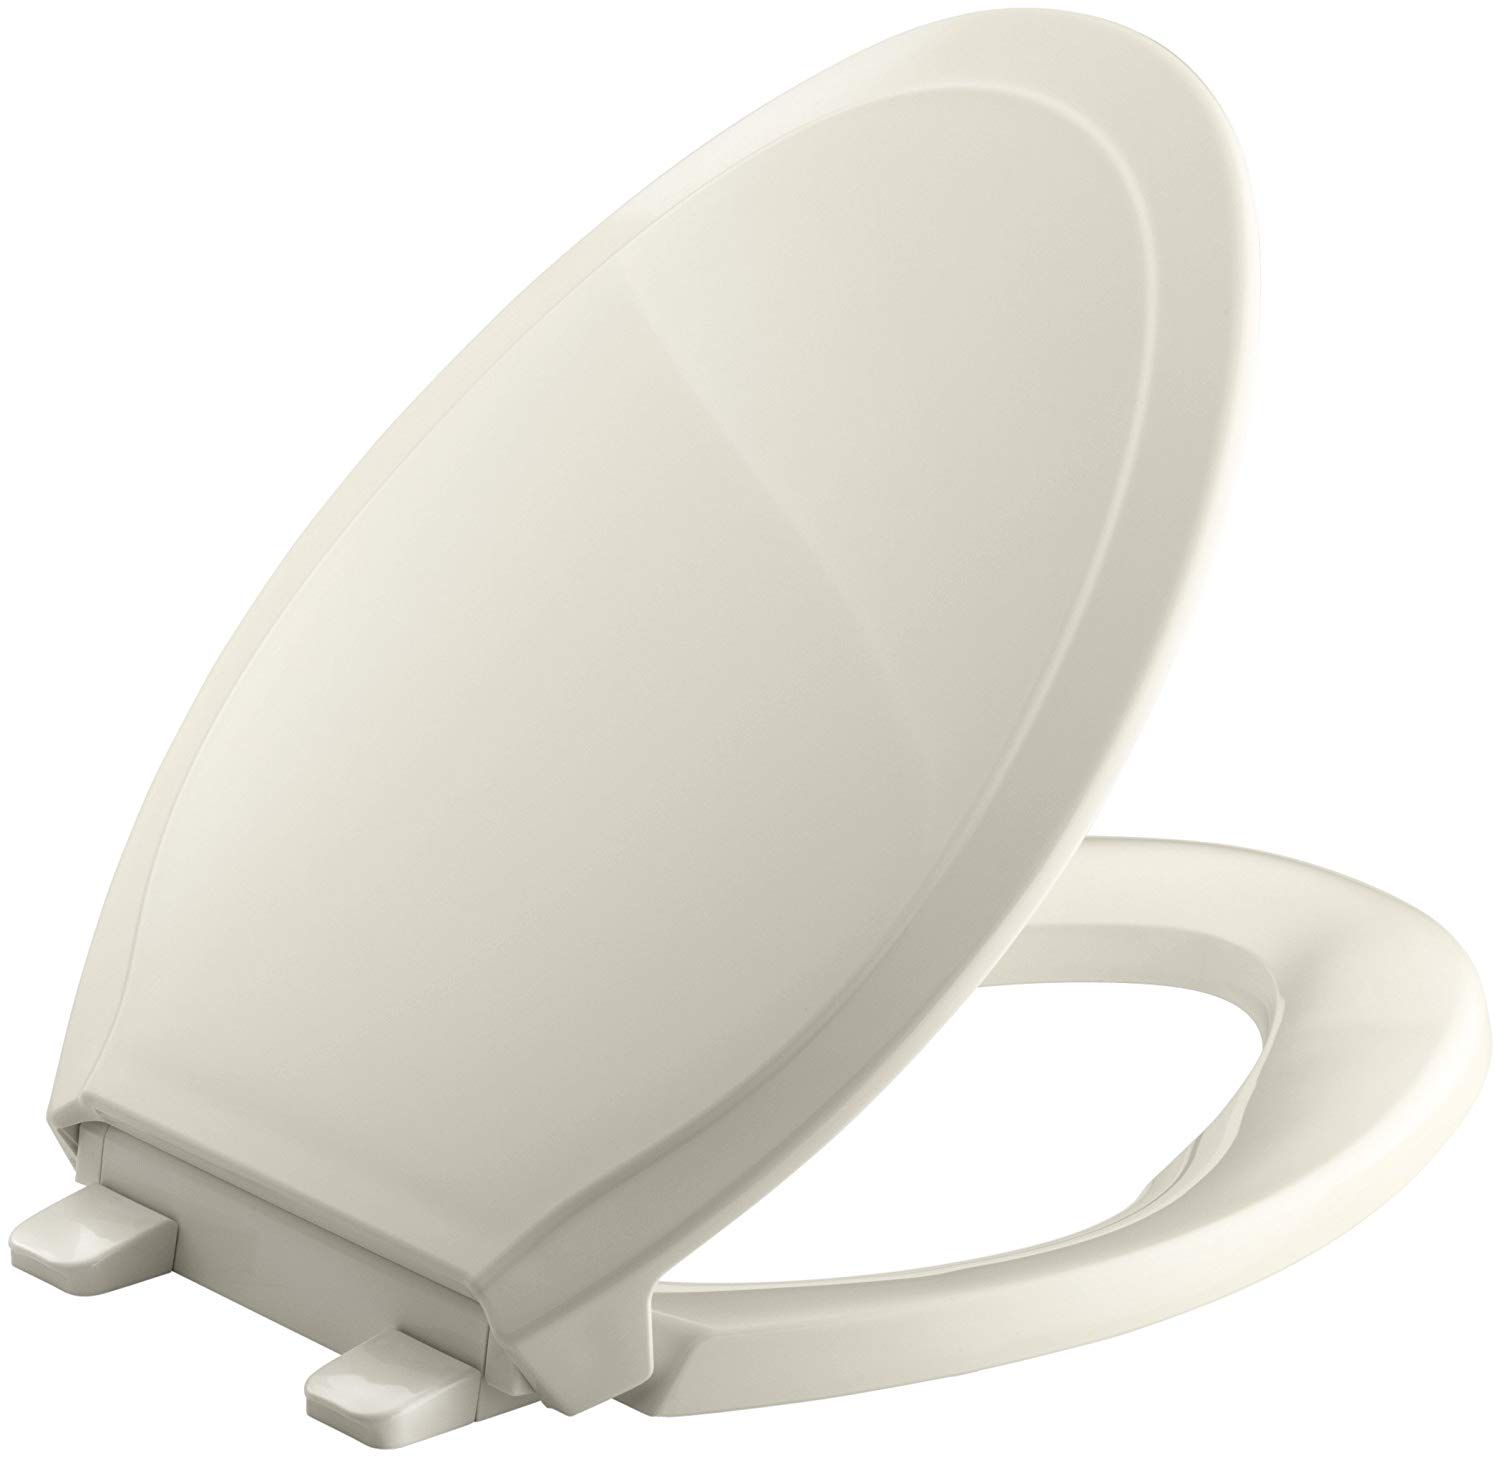 Kohler K 4734 47 Rutledge Quiet Close With Grip Tight Bumpers Elongated Toilet Seat Almond Click Image To Review Elongated Toilet Seat Toilet Seat Kohler